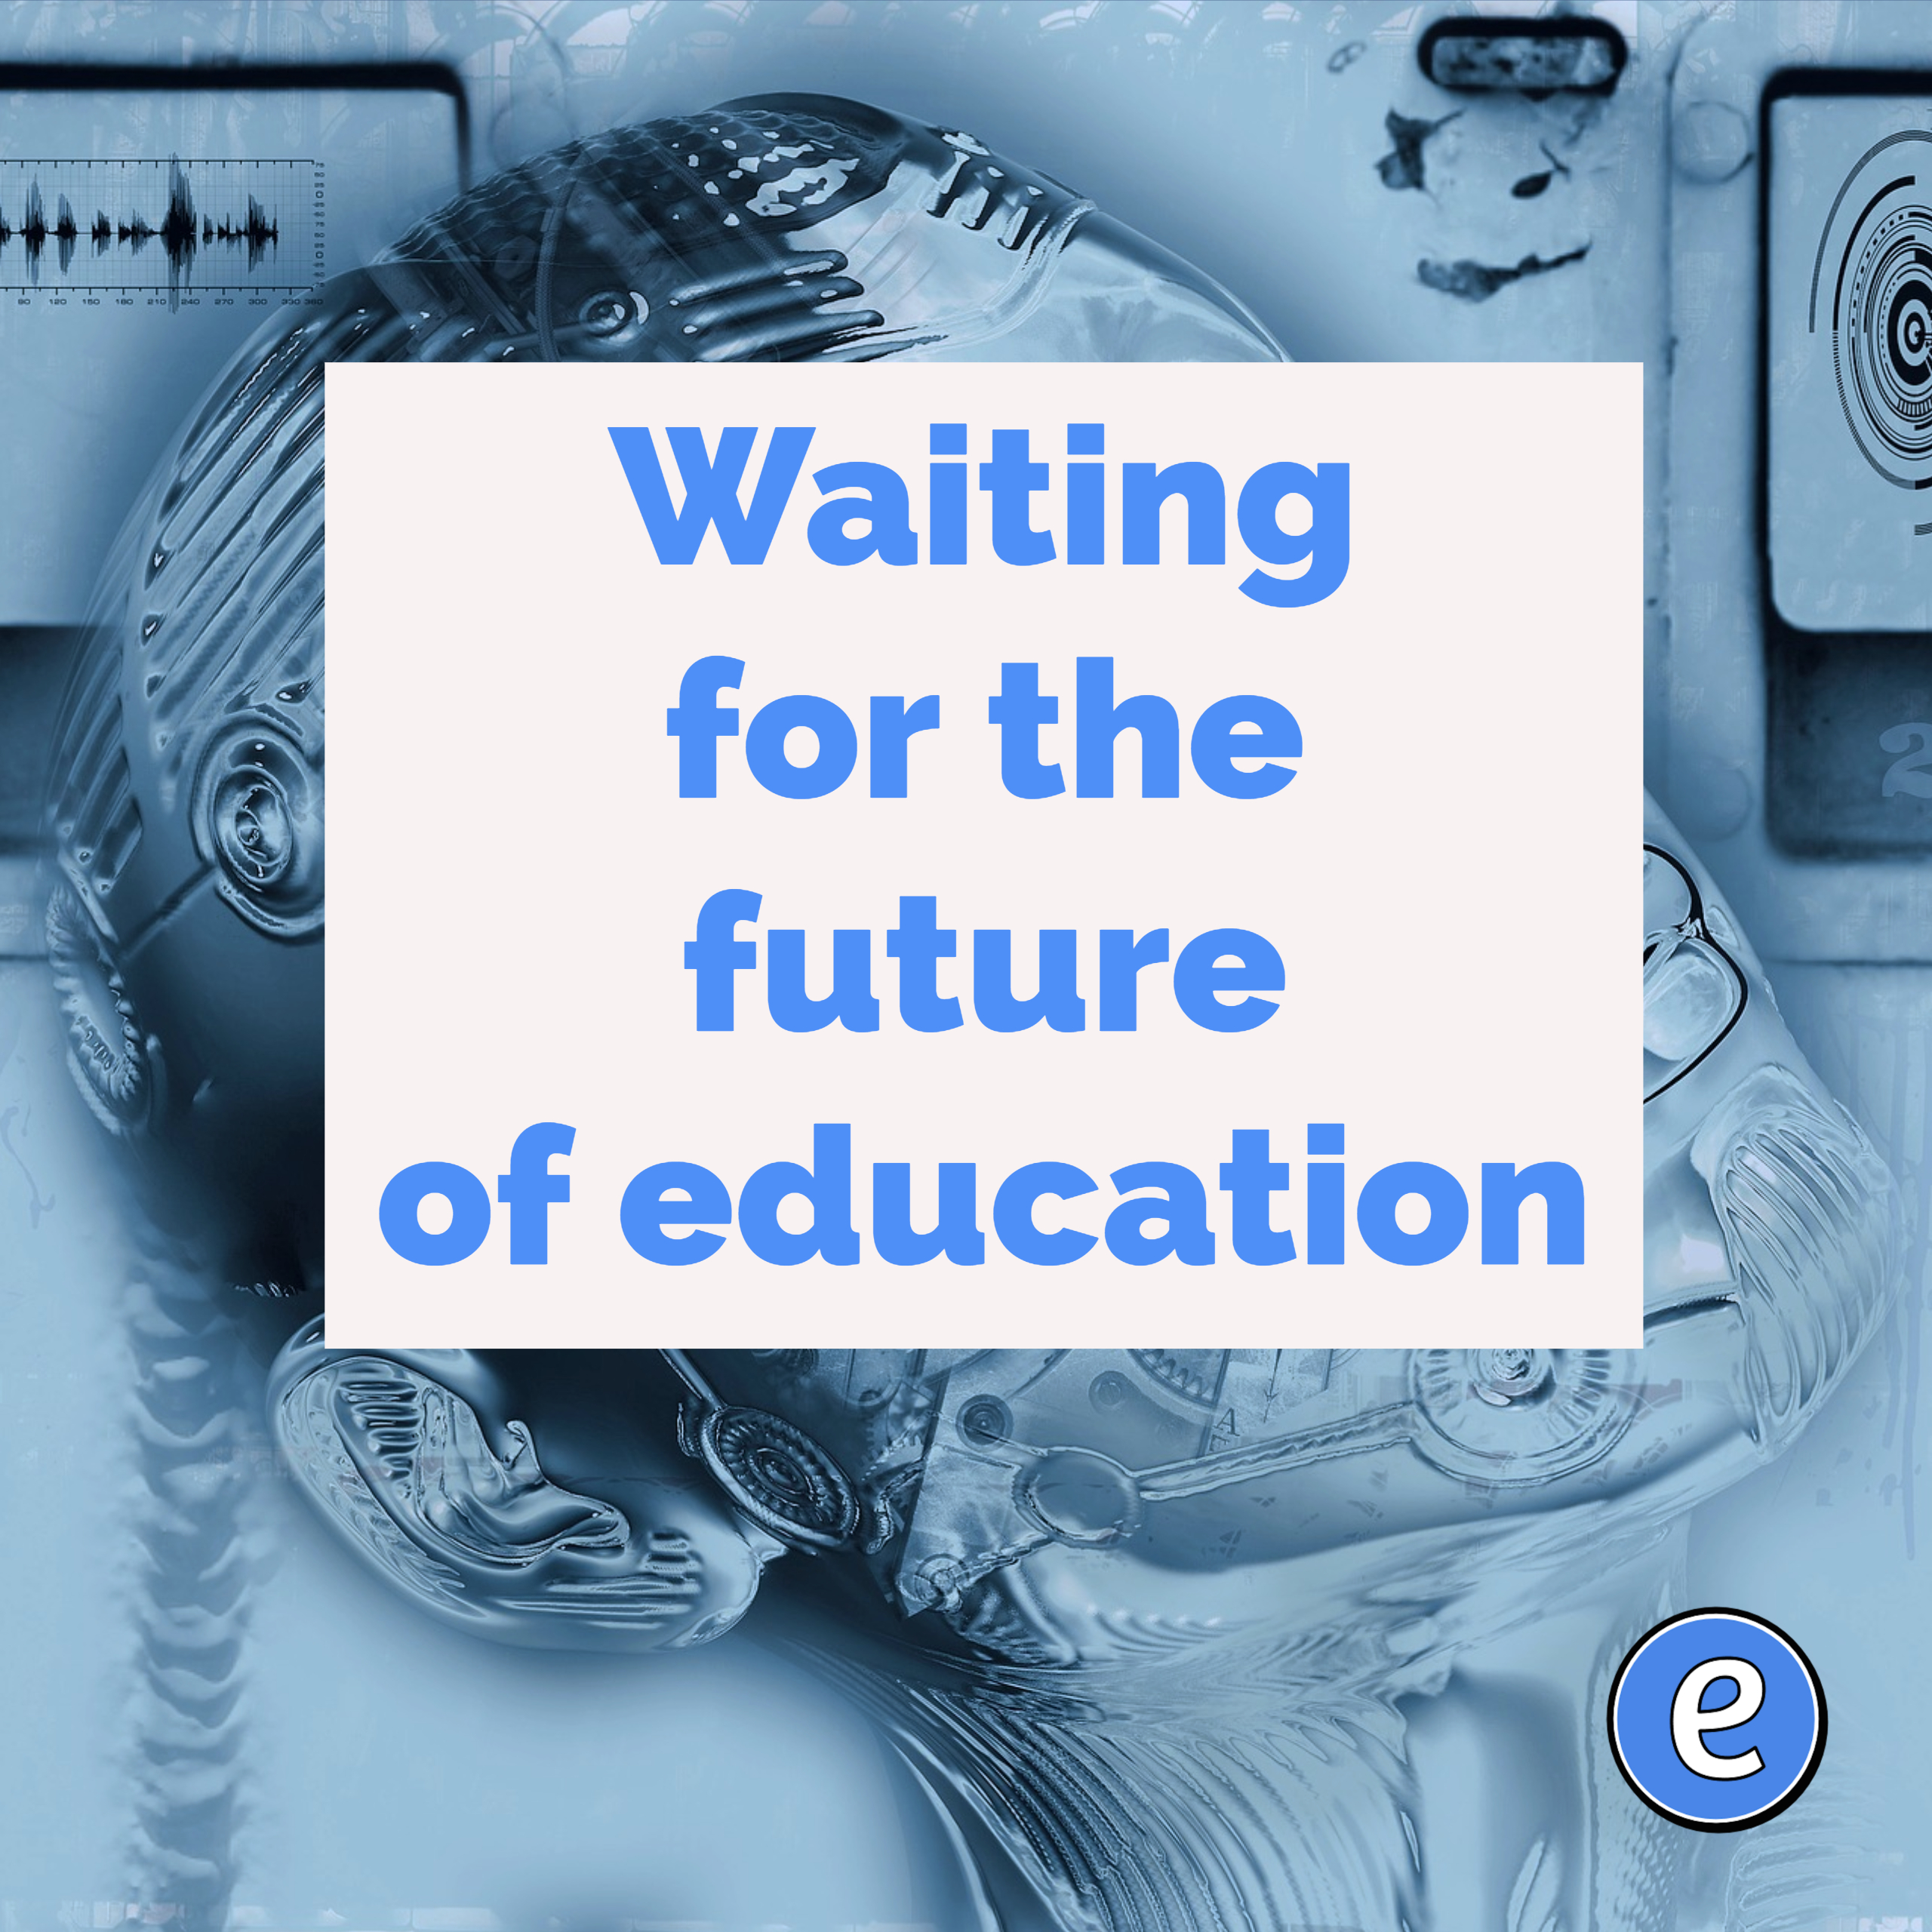 Waiting for the future of education